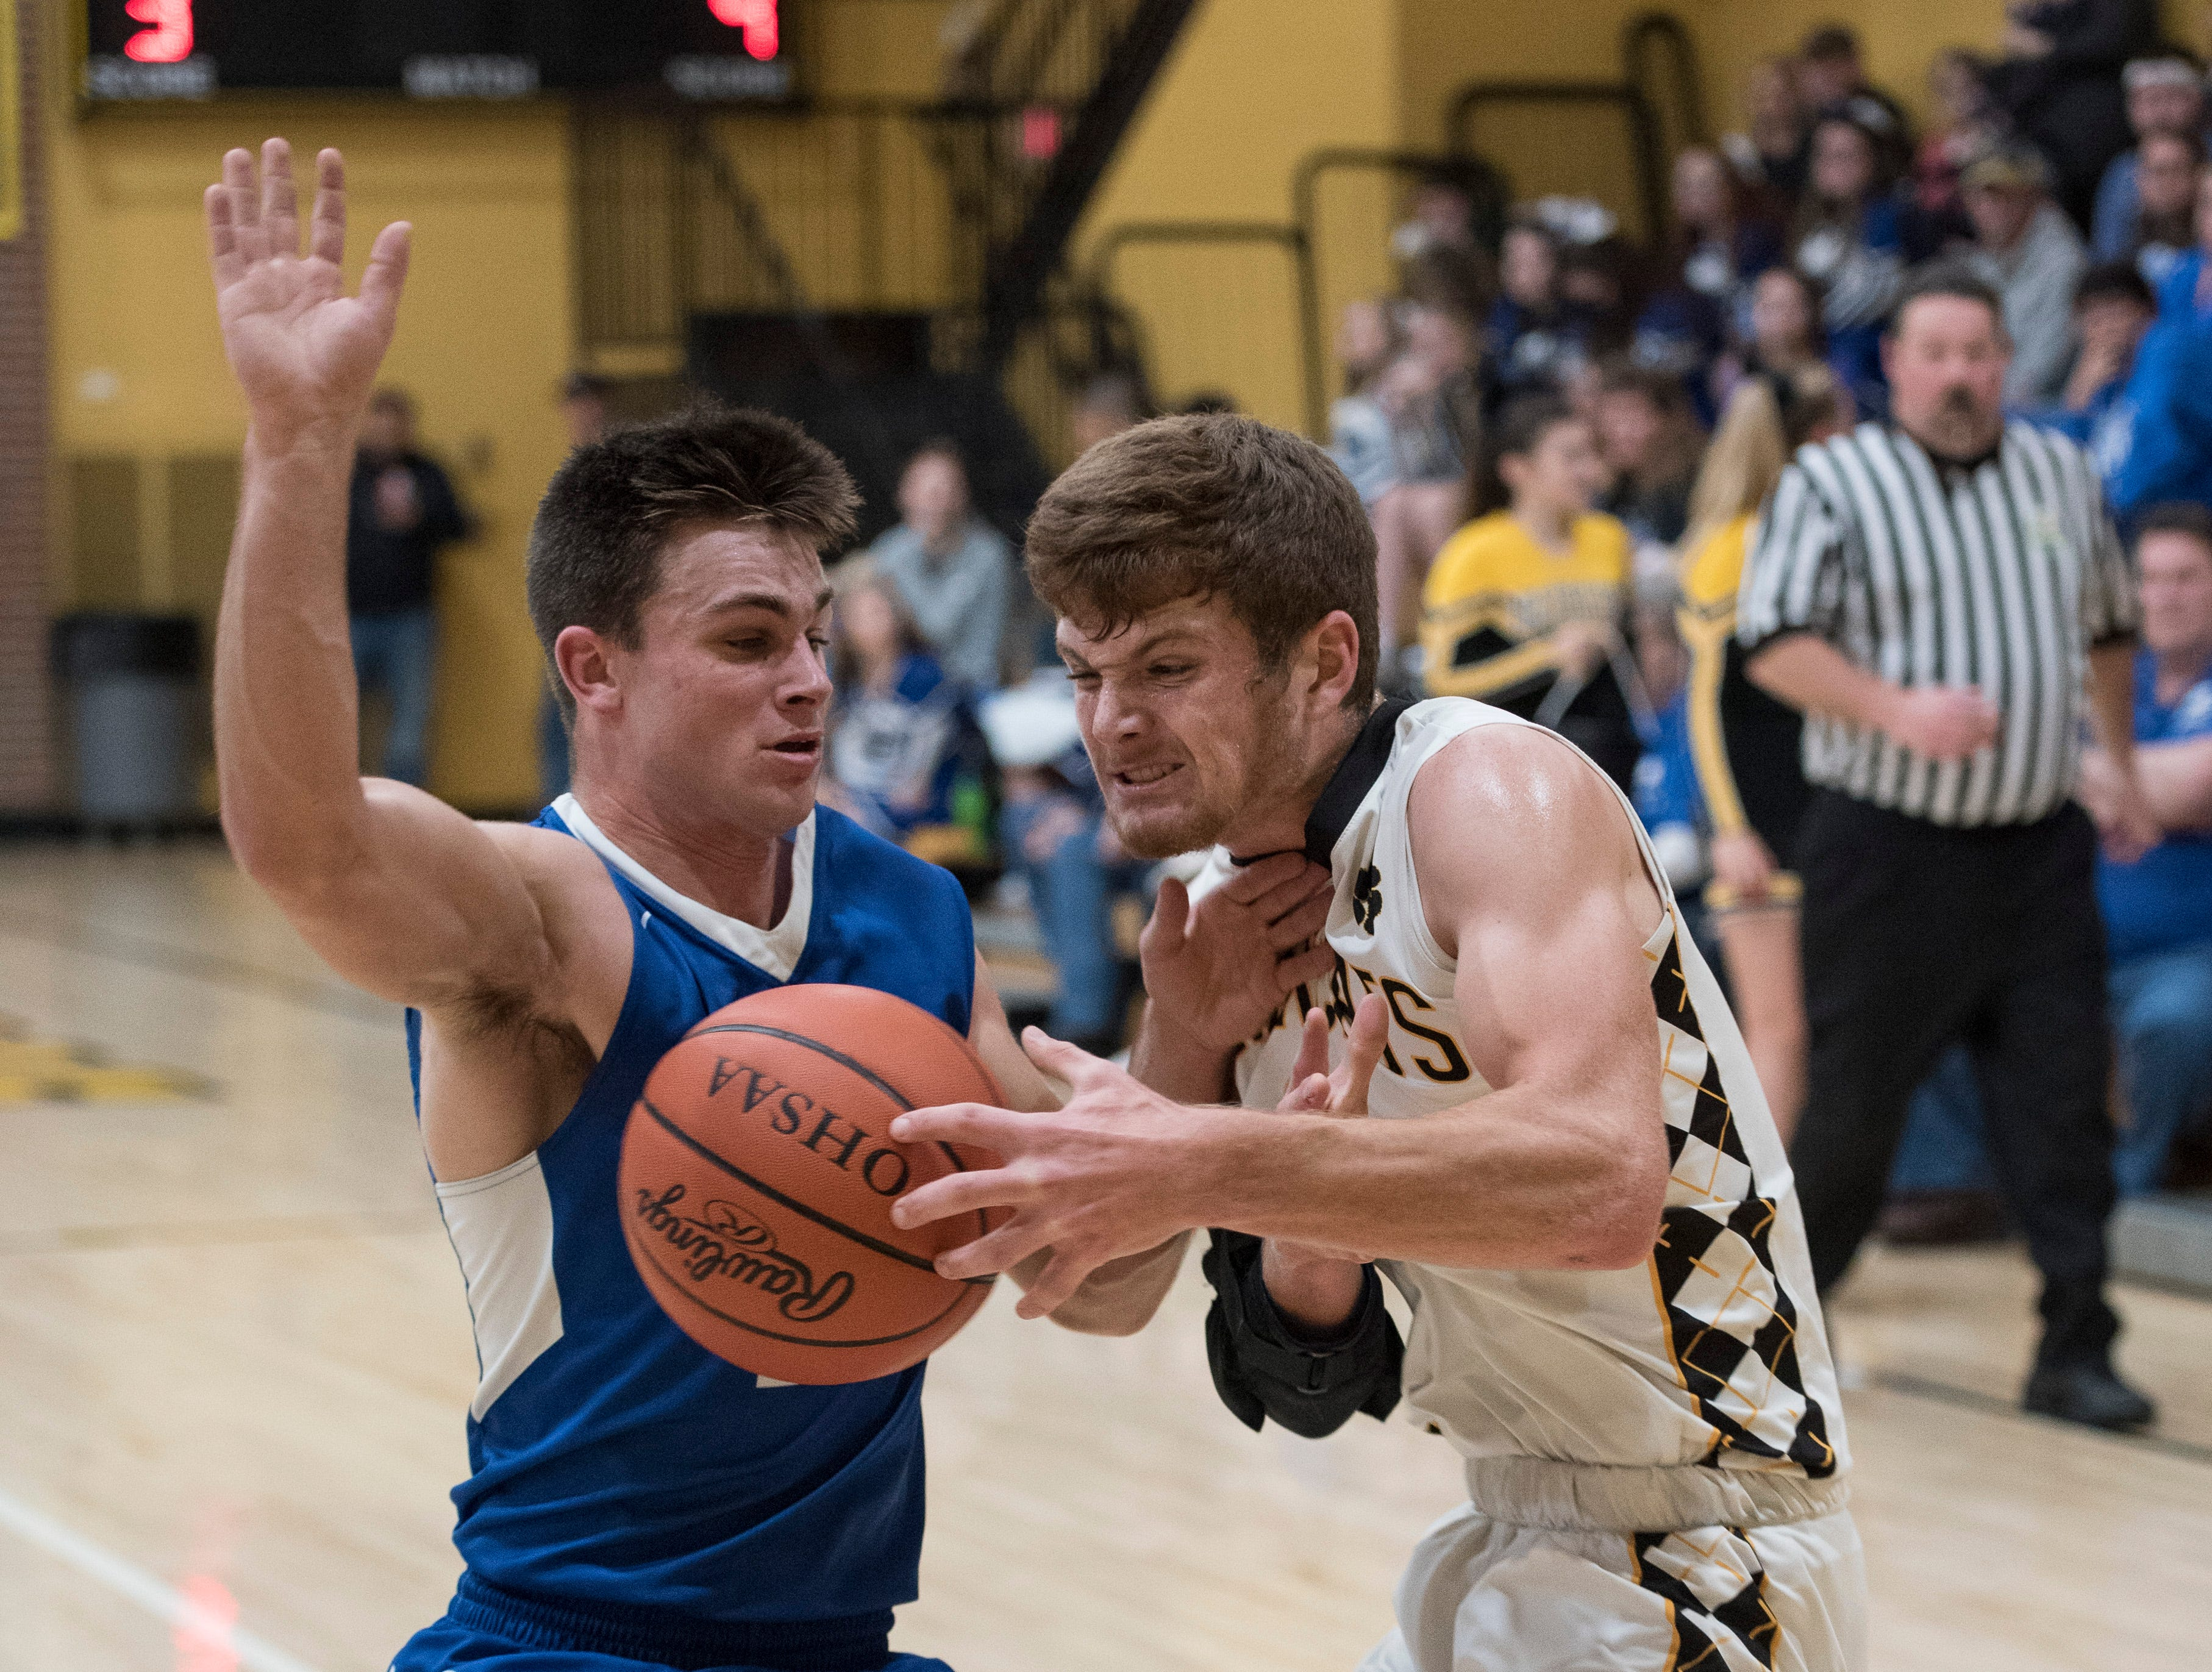 Southeastern junior Lane Ruby attempts to defend the ball as Paint Valley junior Cruz McFadden drives to the basket to score Friday night in Bainbridge, Ohio. Paint Valley defeated Southeastern 60-55.